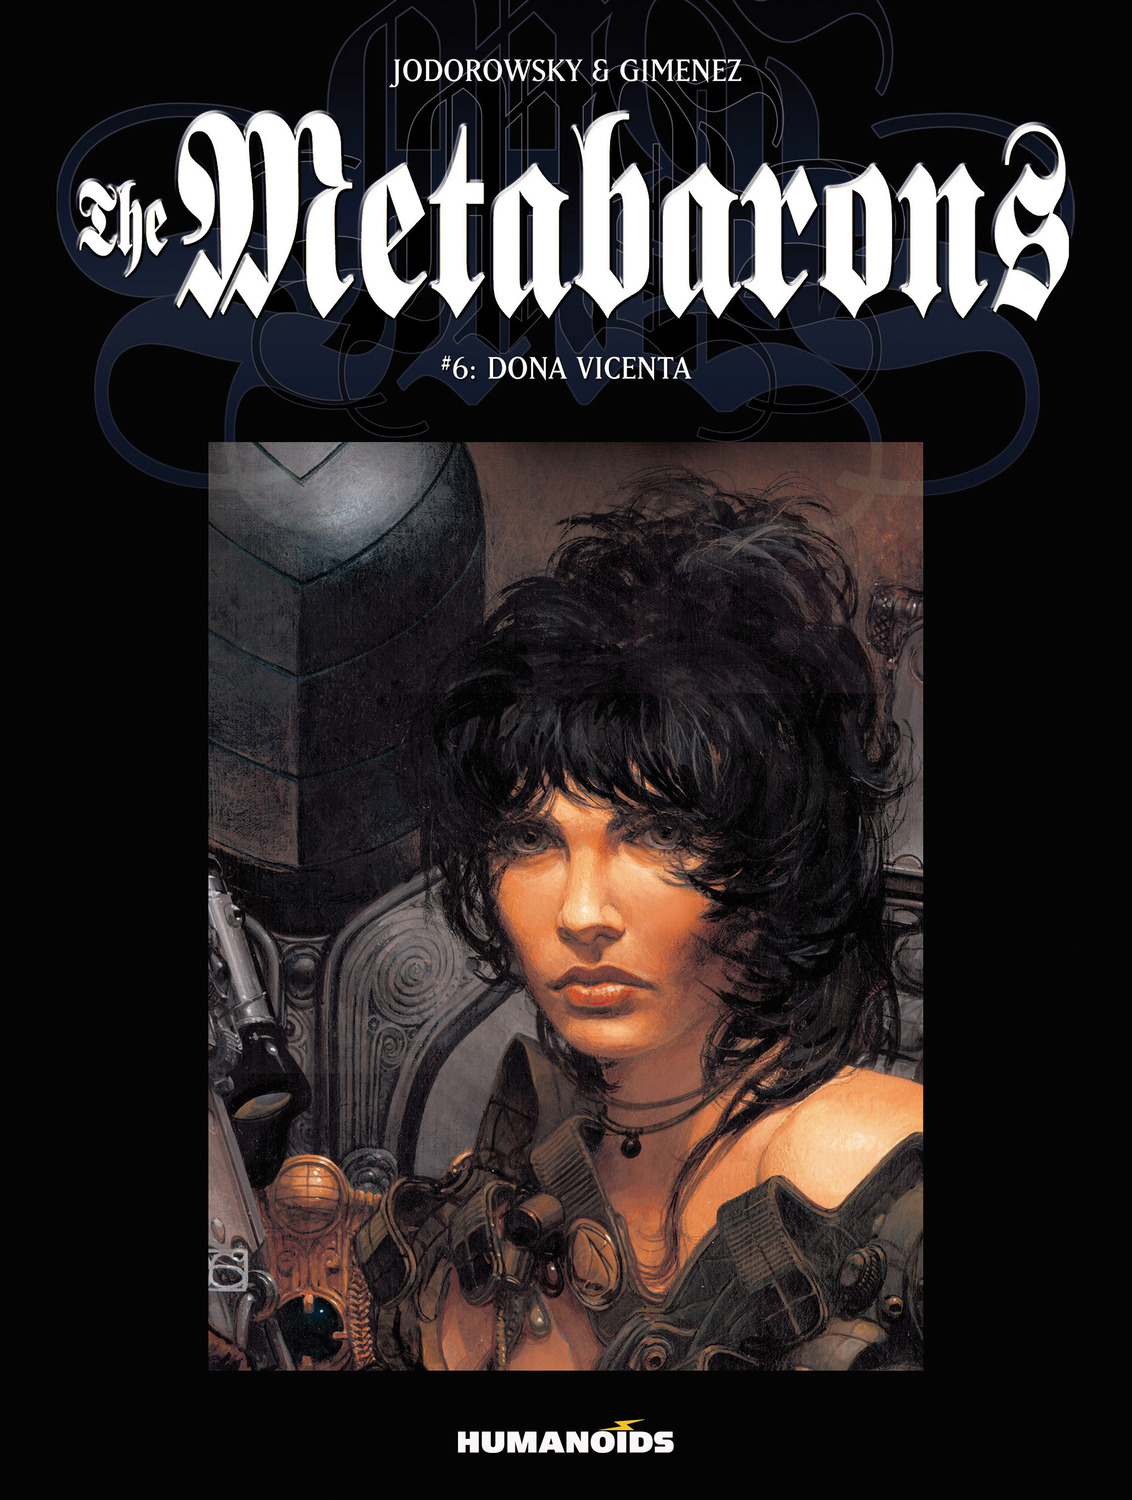 The Metabarons #6 : Dona Vicenta - Digital Comic